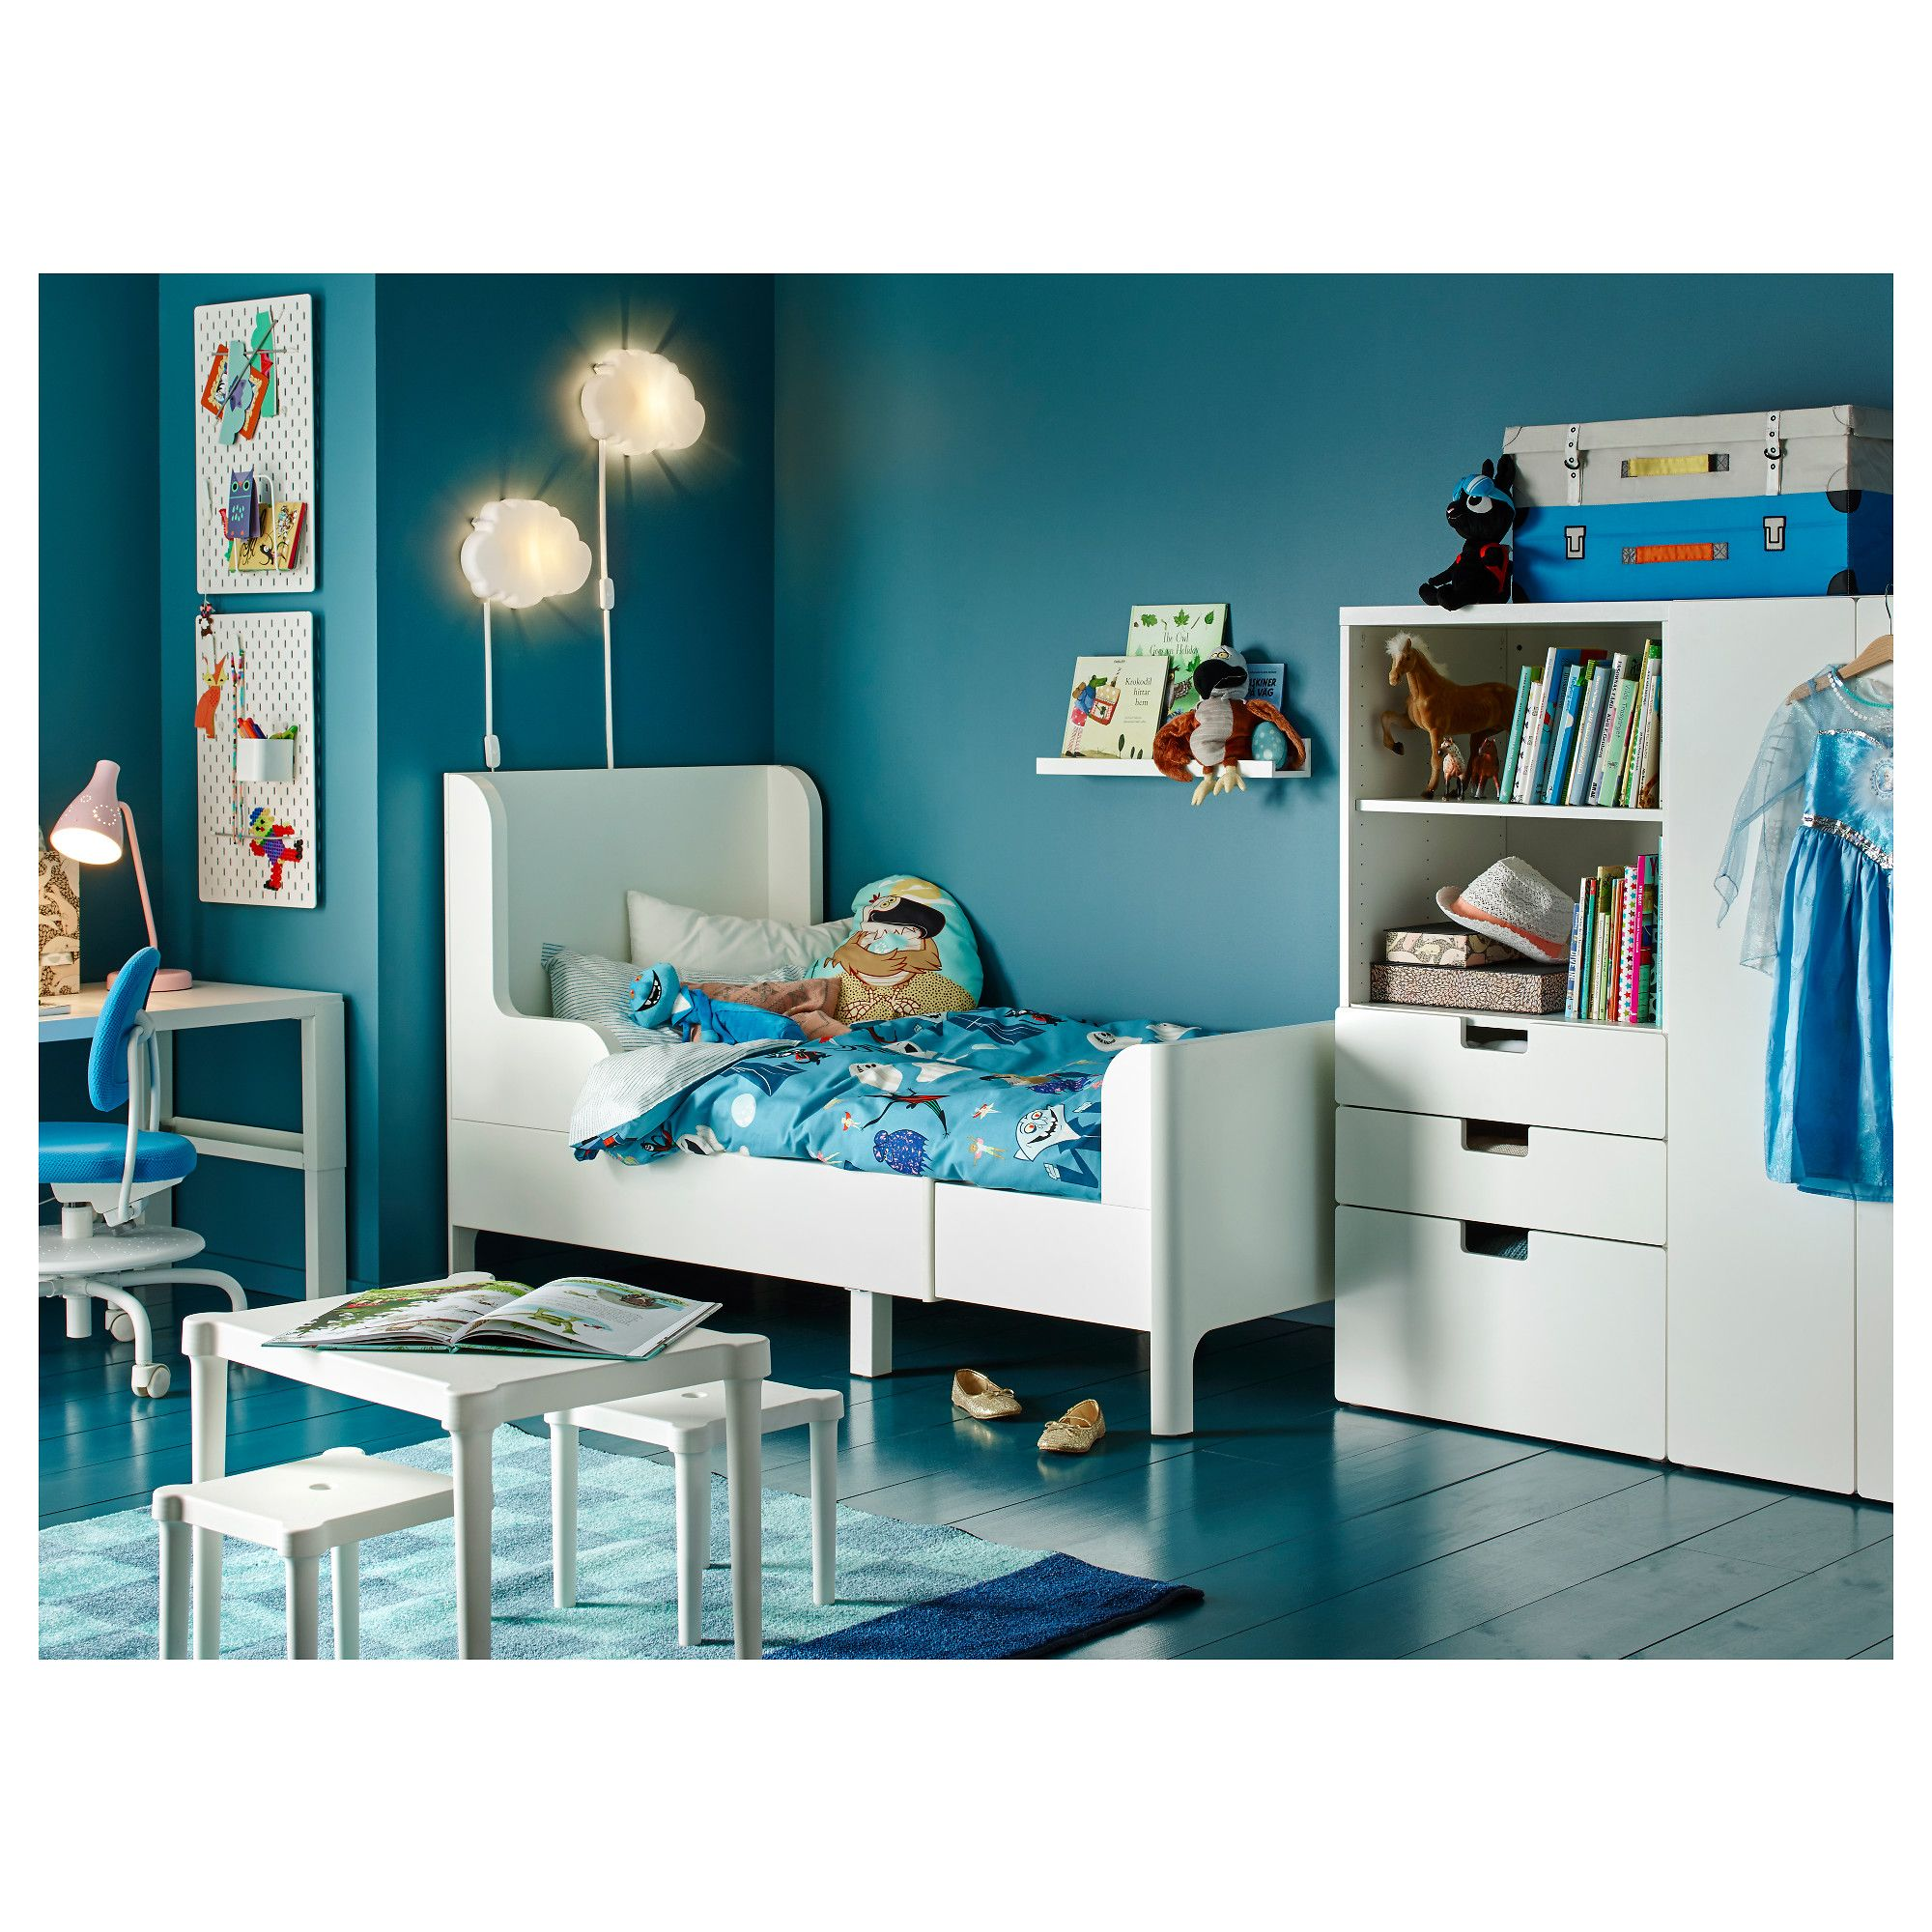 Sedia Junior Ikea Busunge Extendable Bed White Ikea Products Ikea Kids Room